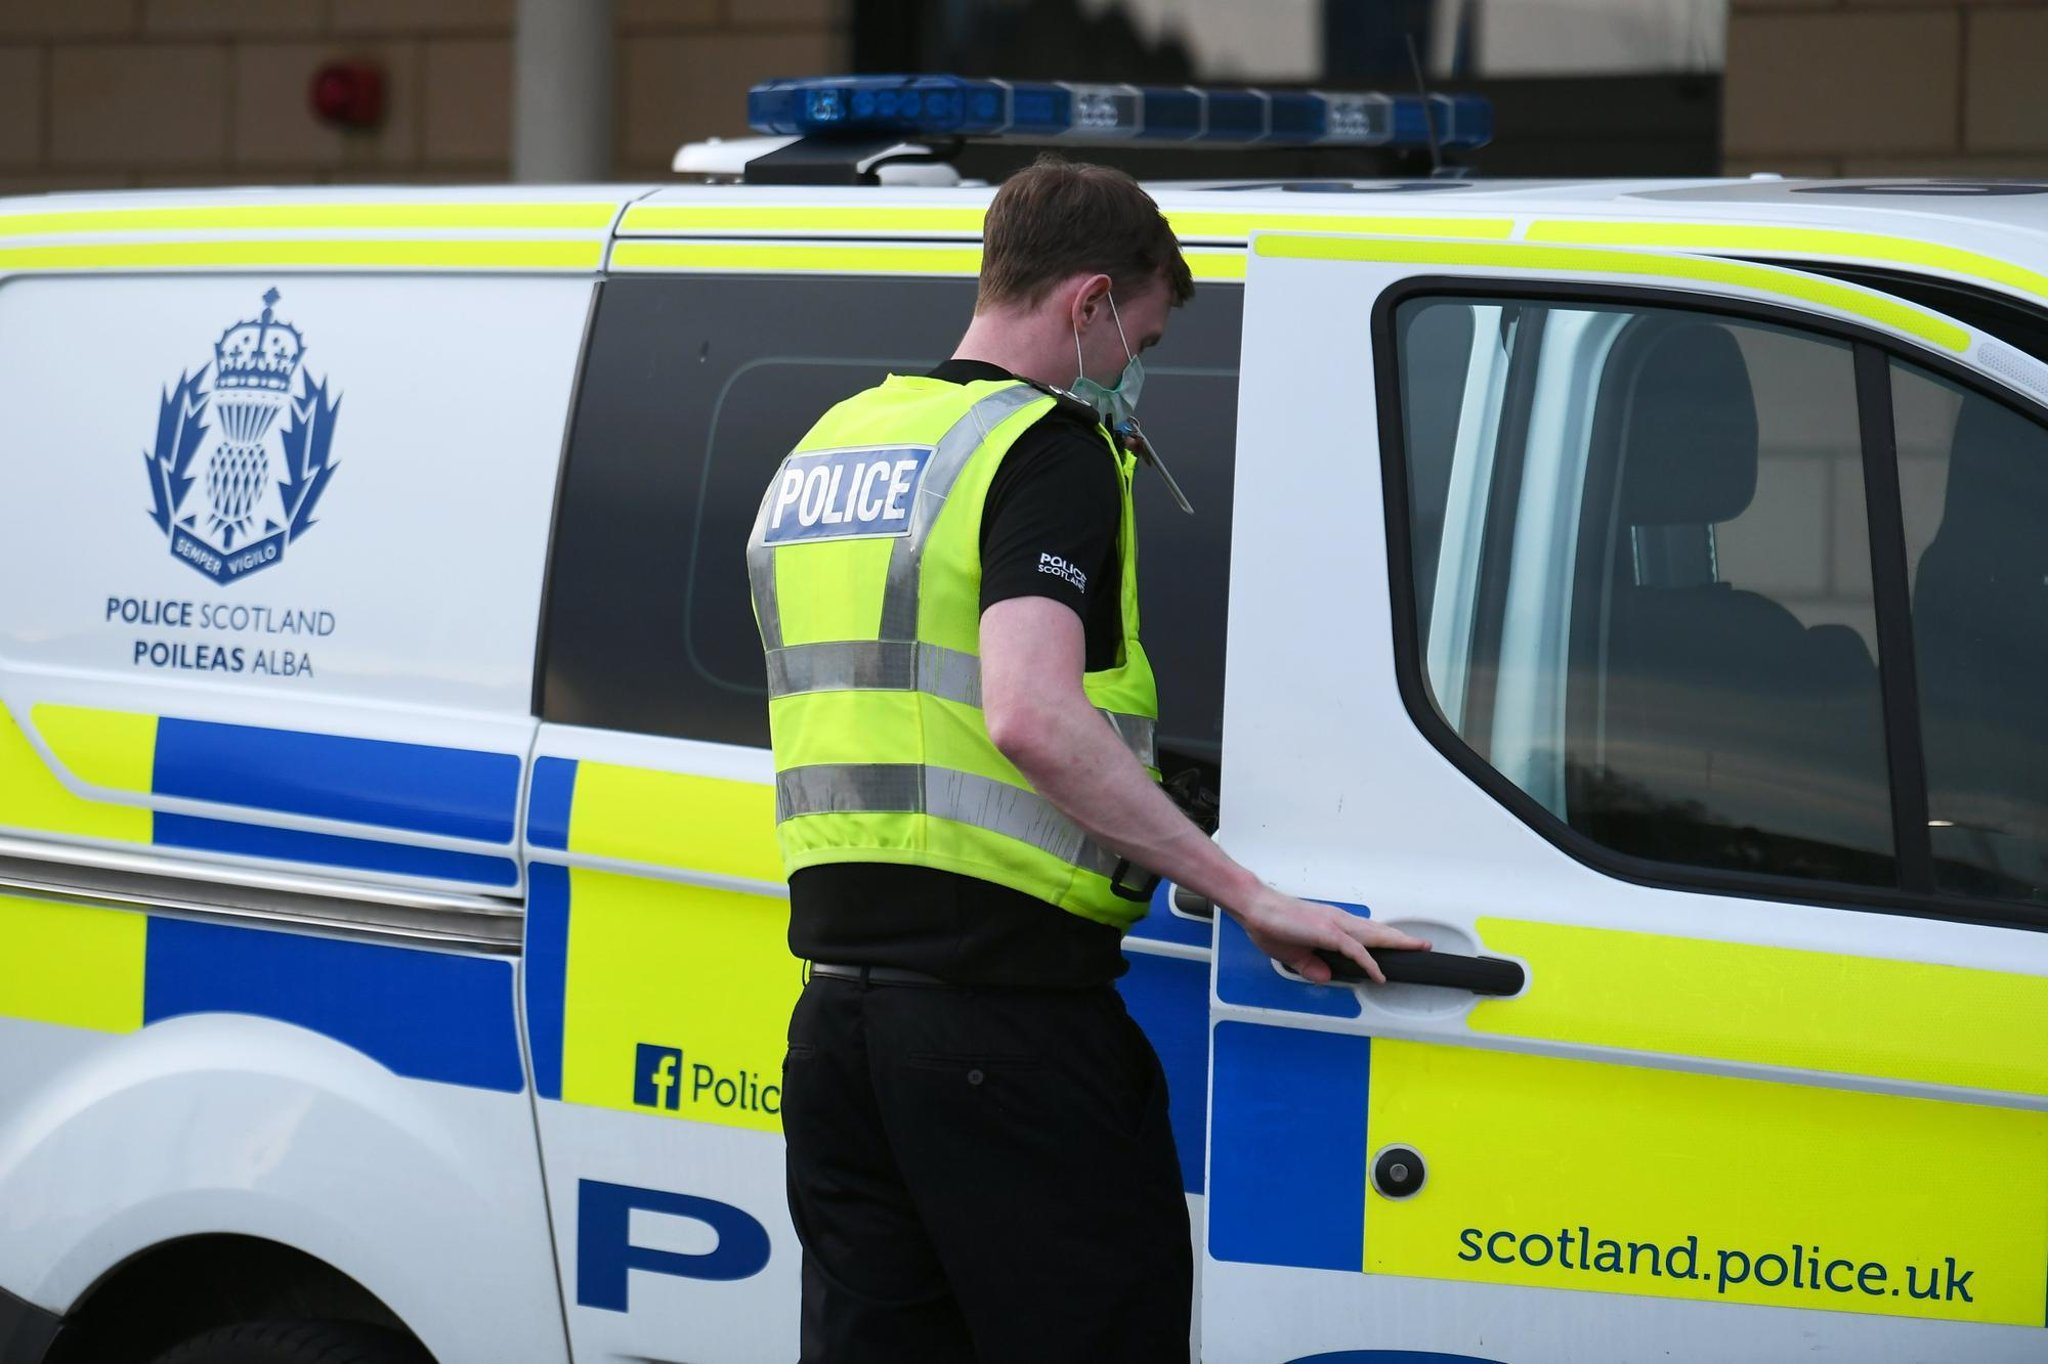 Police are appealing for information after apensionerwasrobbed in Glasgow's south side